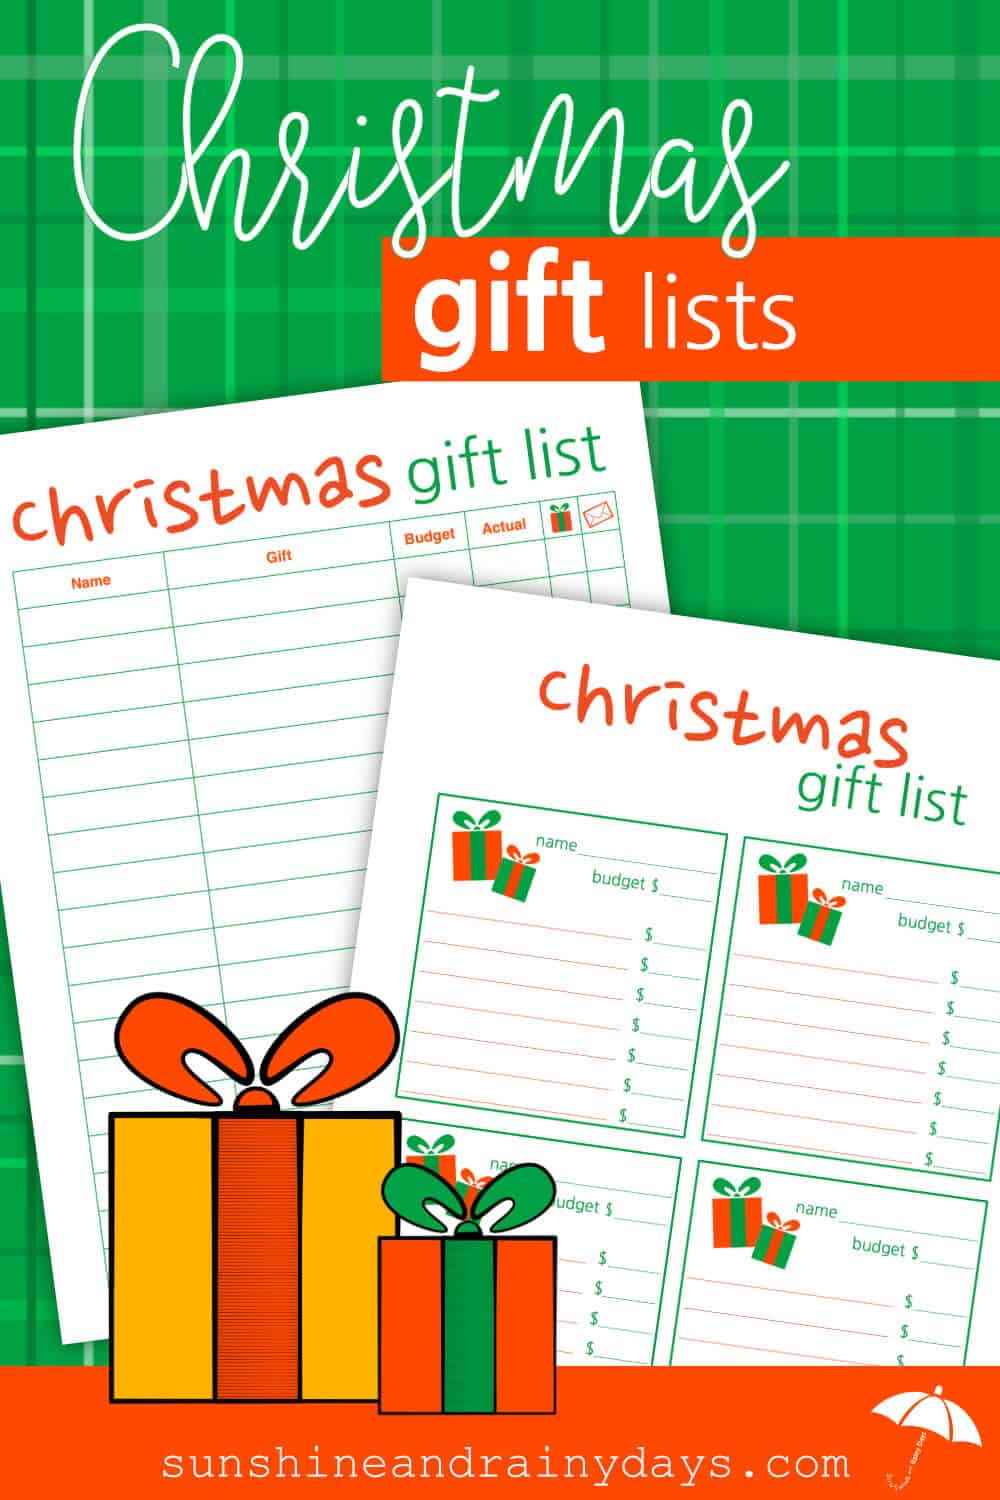 An organized Christmas starts right here with the Christmas Gift List! Christmas | Christmas Gifts | Christmas Printables | #Christmas #Printables #Christmasprintables #Christmasgifts #SARD